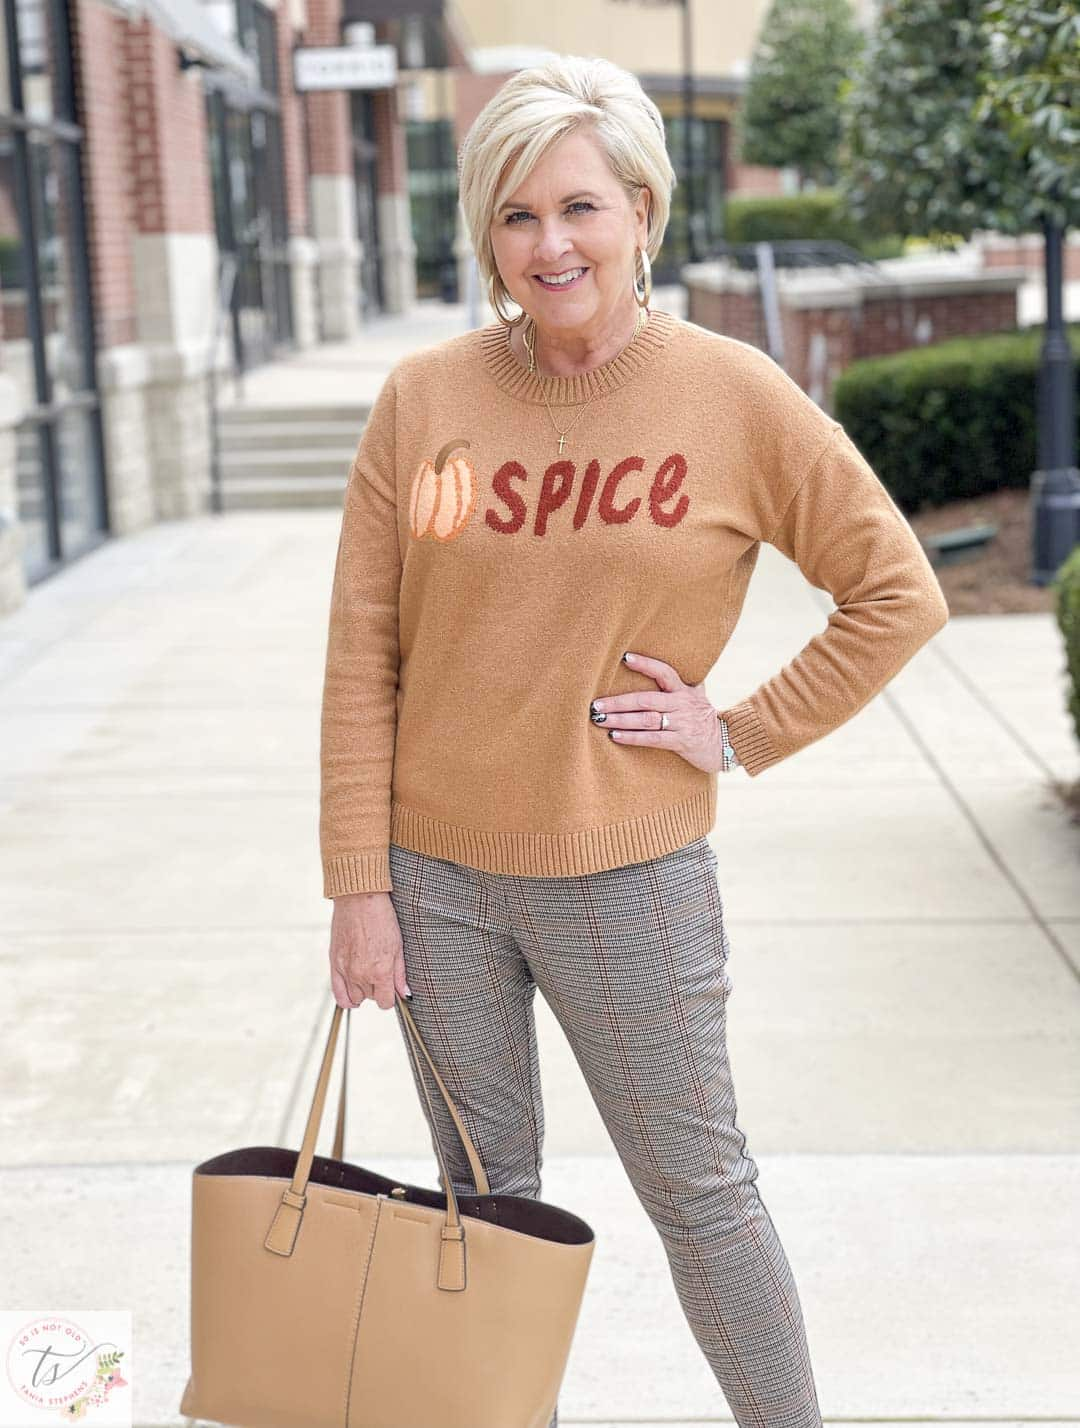 Over 40 Fashion Blogger, Tania Stephens, is wearing a Pumpkin Spice sweater, a pair plaid Ponte knit pants, a Tory Burch handbag, and taupe wedges